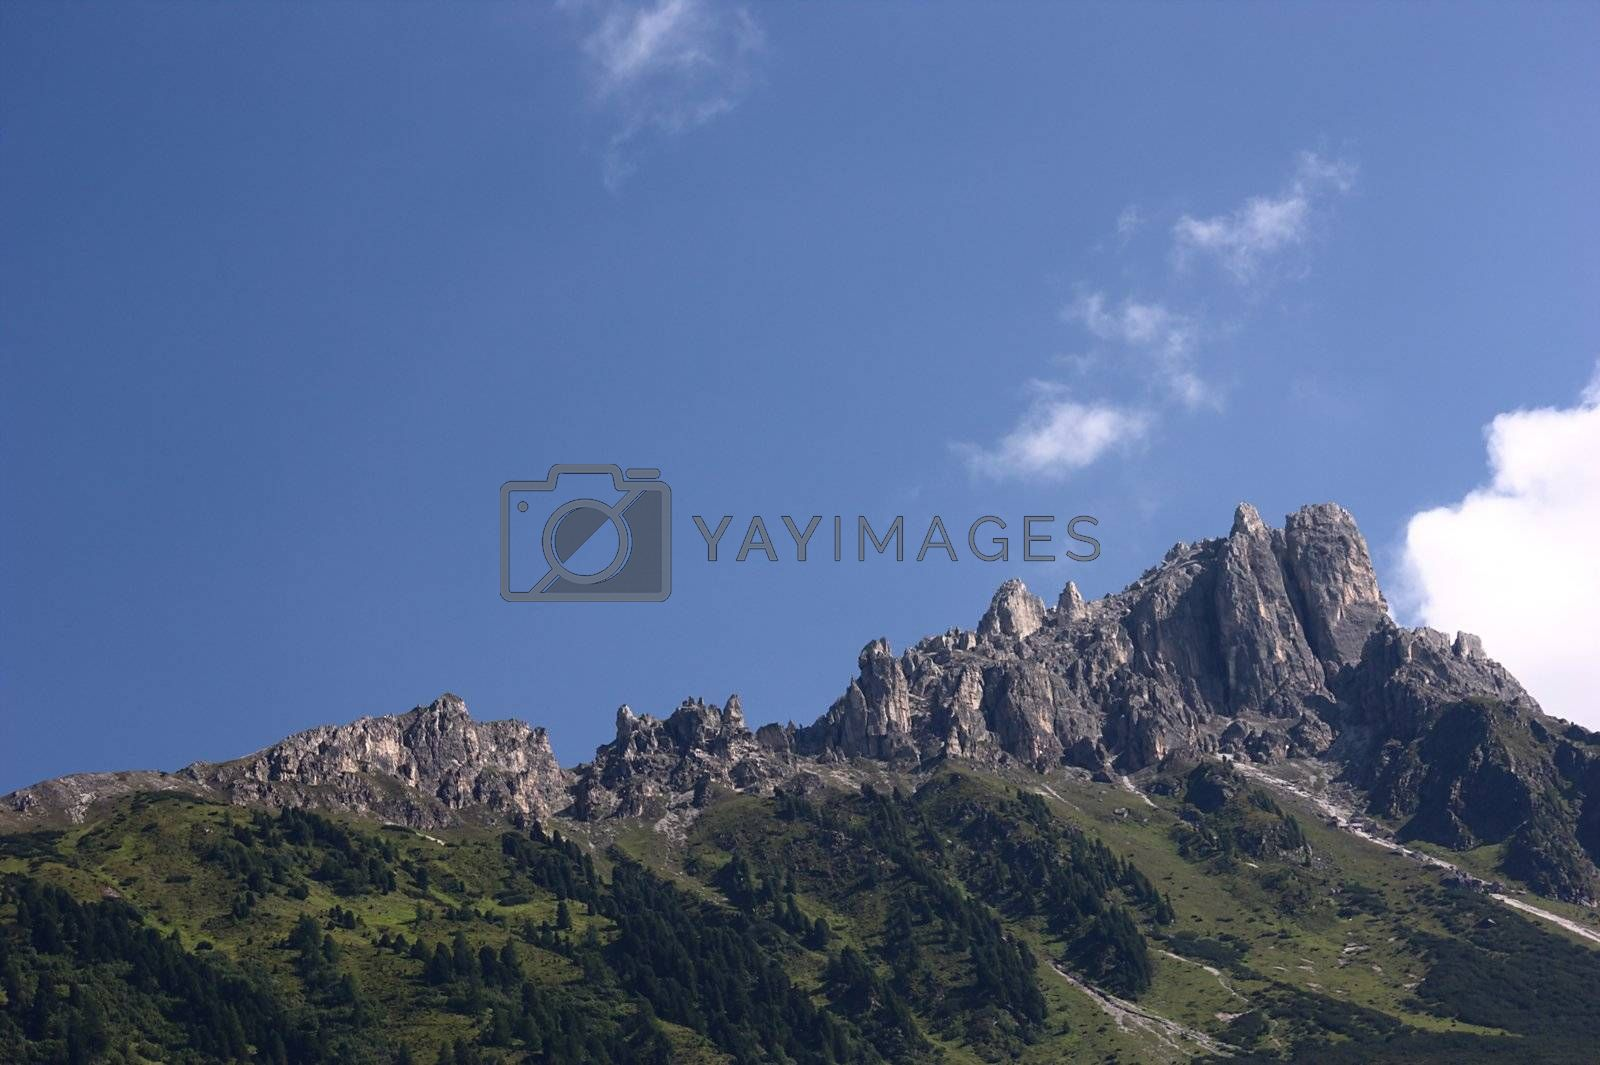 Royalty free image of Mountains by cflux